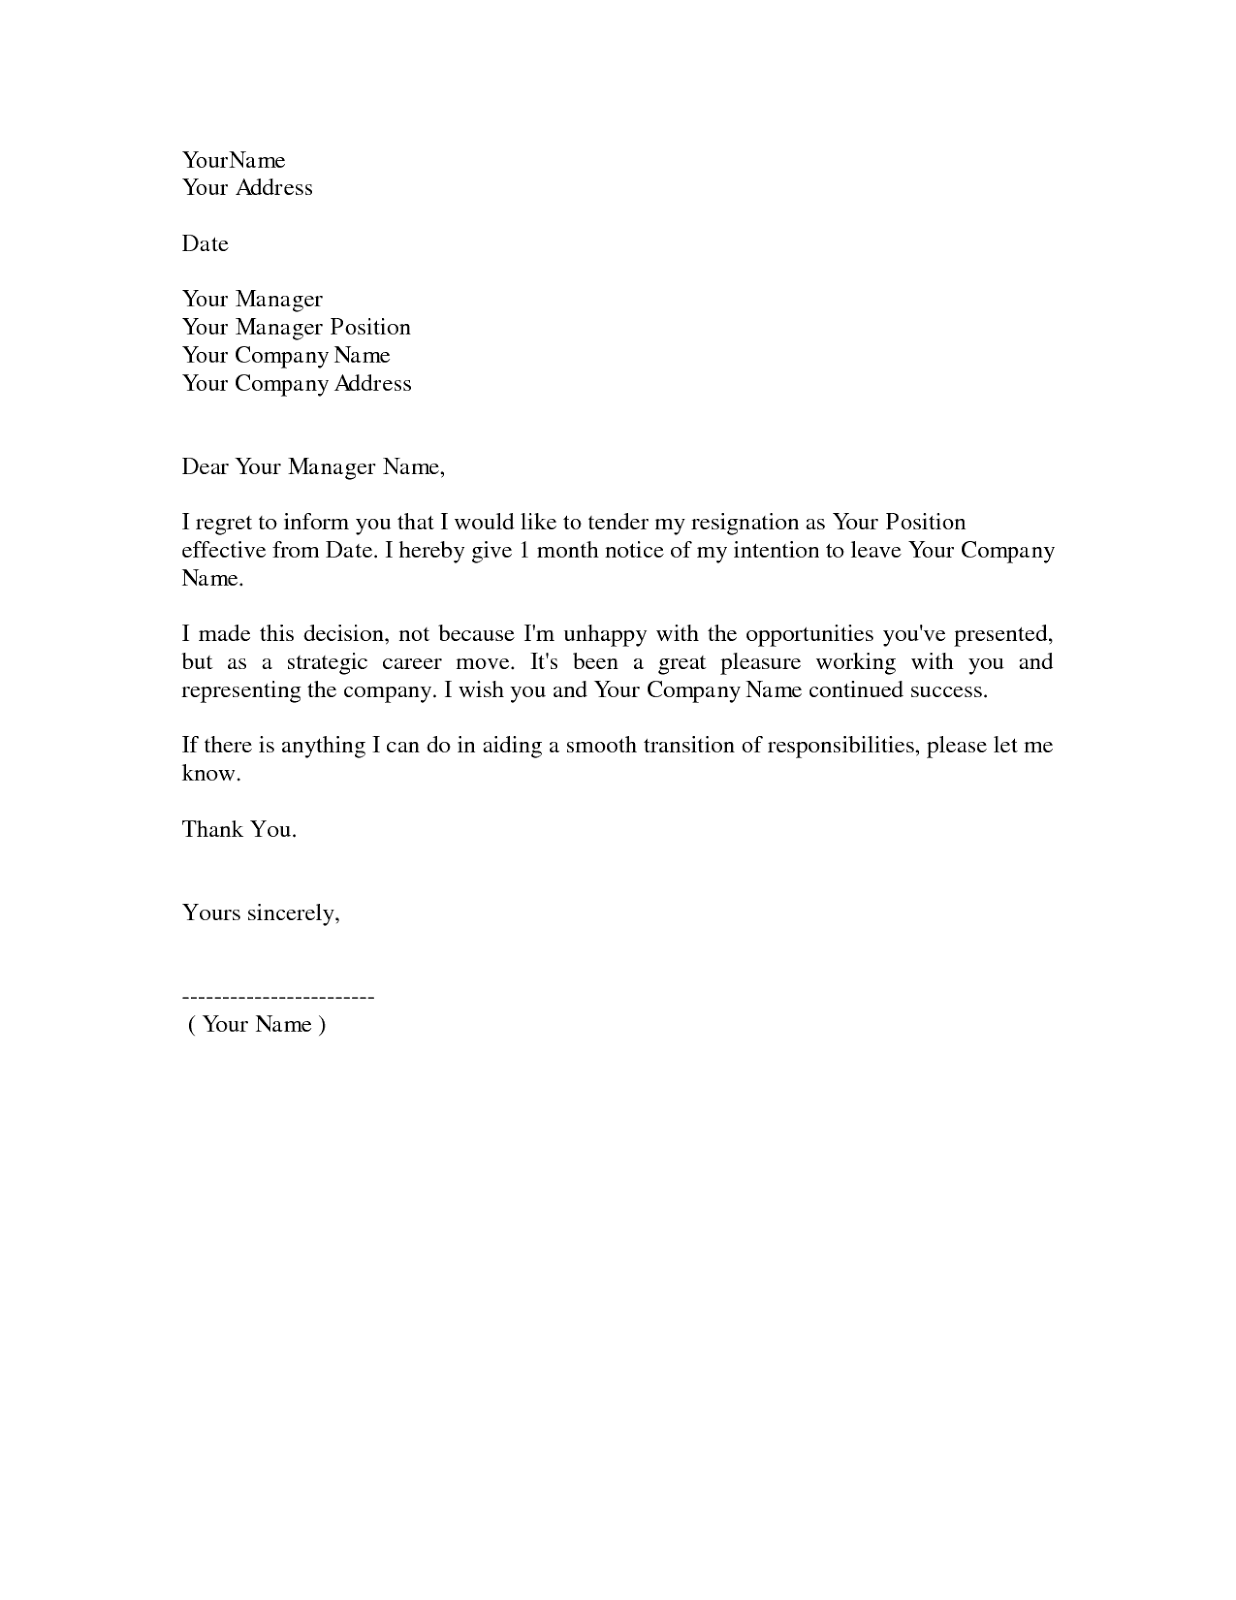 Resignation Letter, Notice Letter Template, Resignation Letter Sample